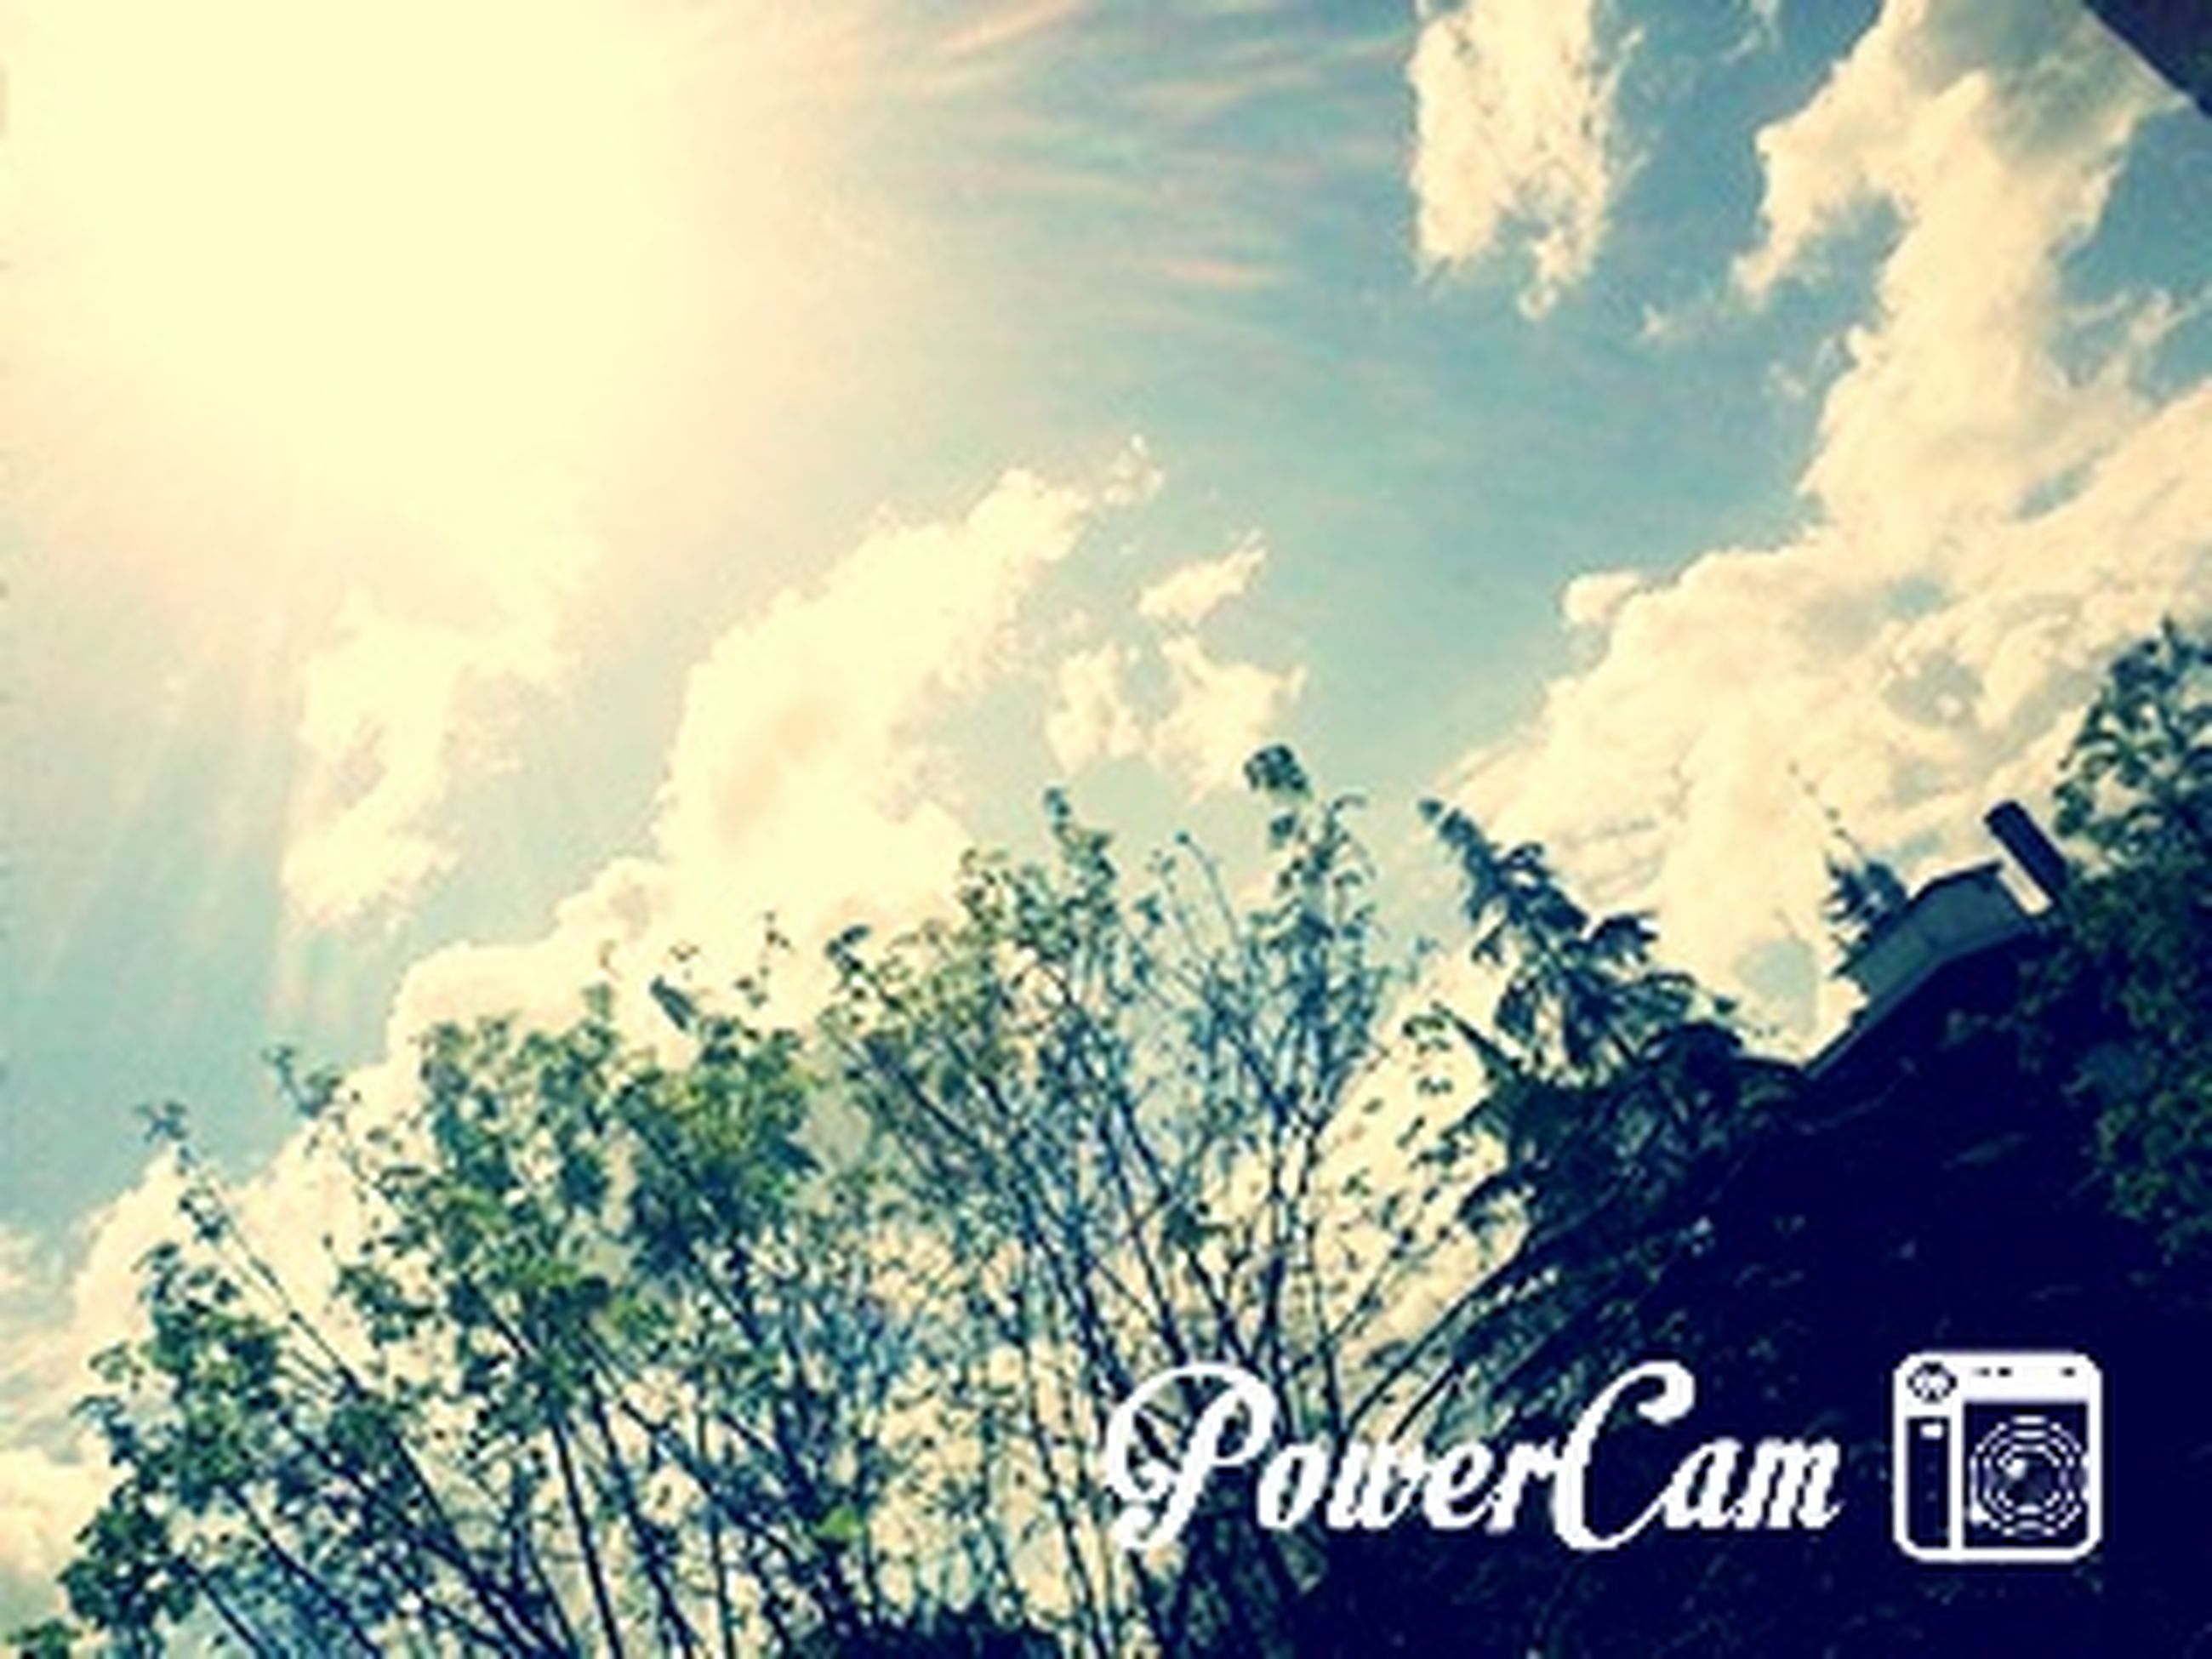 sky, mountain, tranquility, scenics, tree, beauty in nature, text, tranquil scene, nature, sunlight, cloud - sky, low angle view, western script, communication, day, cloud, no people, blue, outdoors, sunbeam